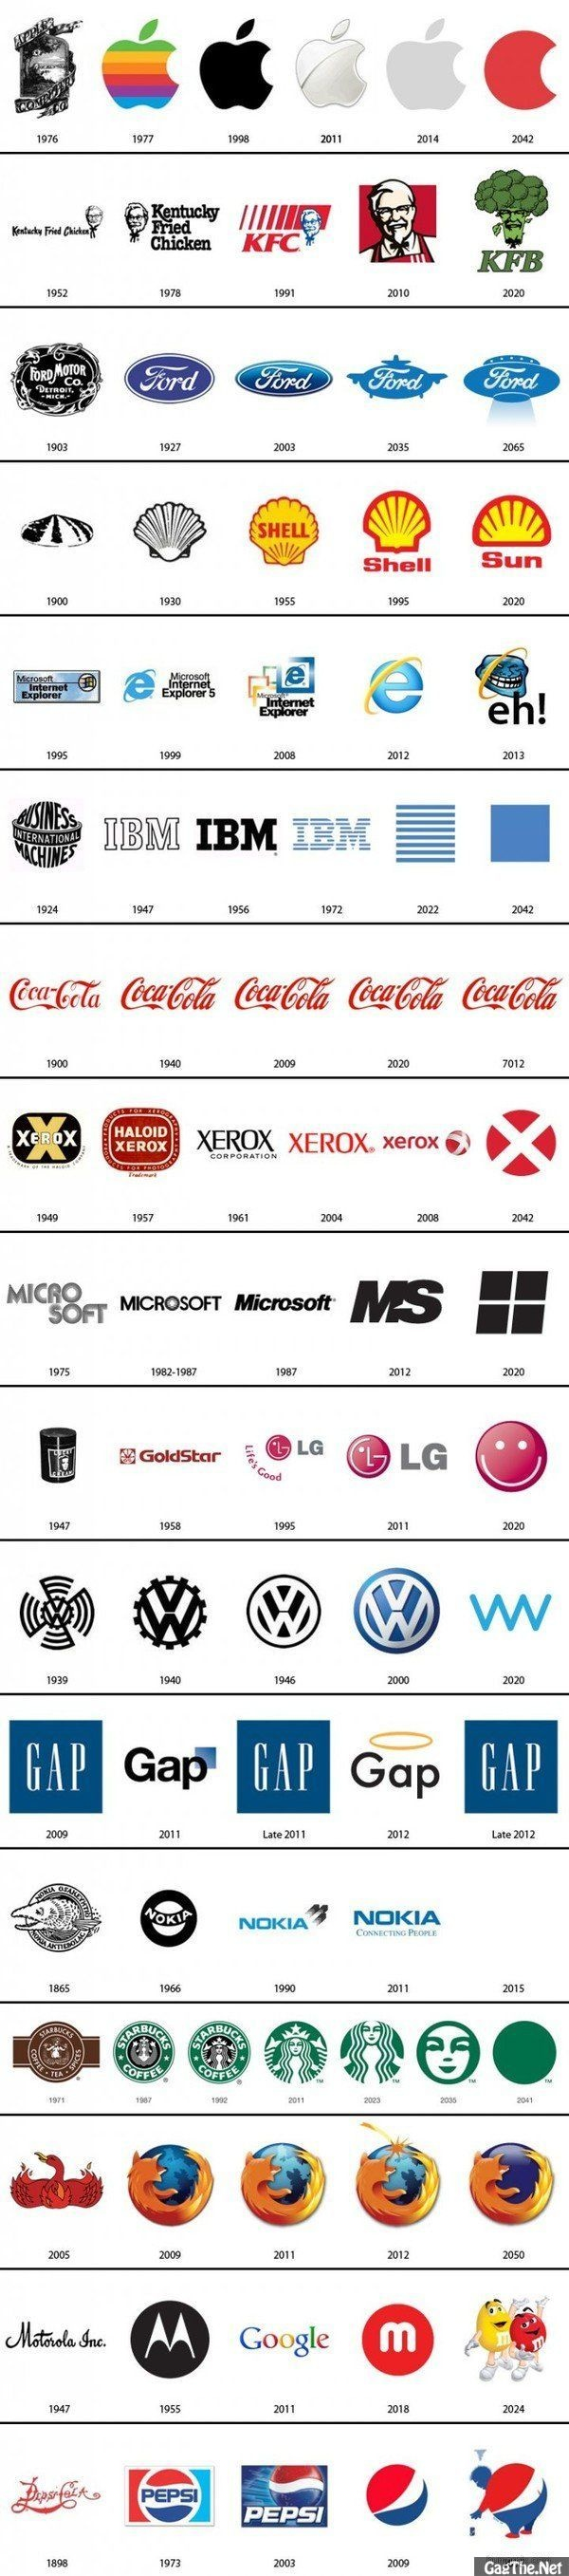 The evolution of the logo. Some of these made me laugh out loud at work.